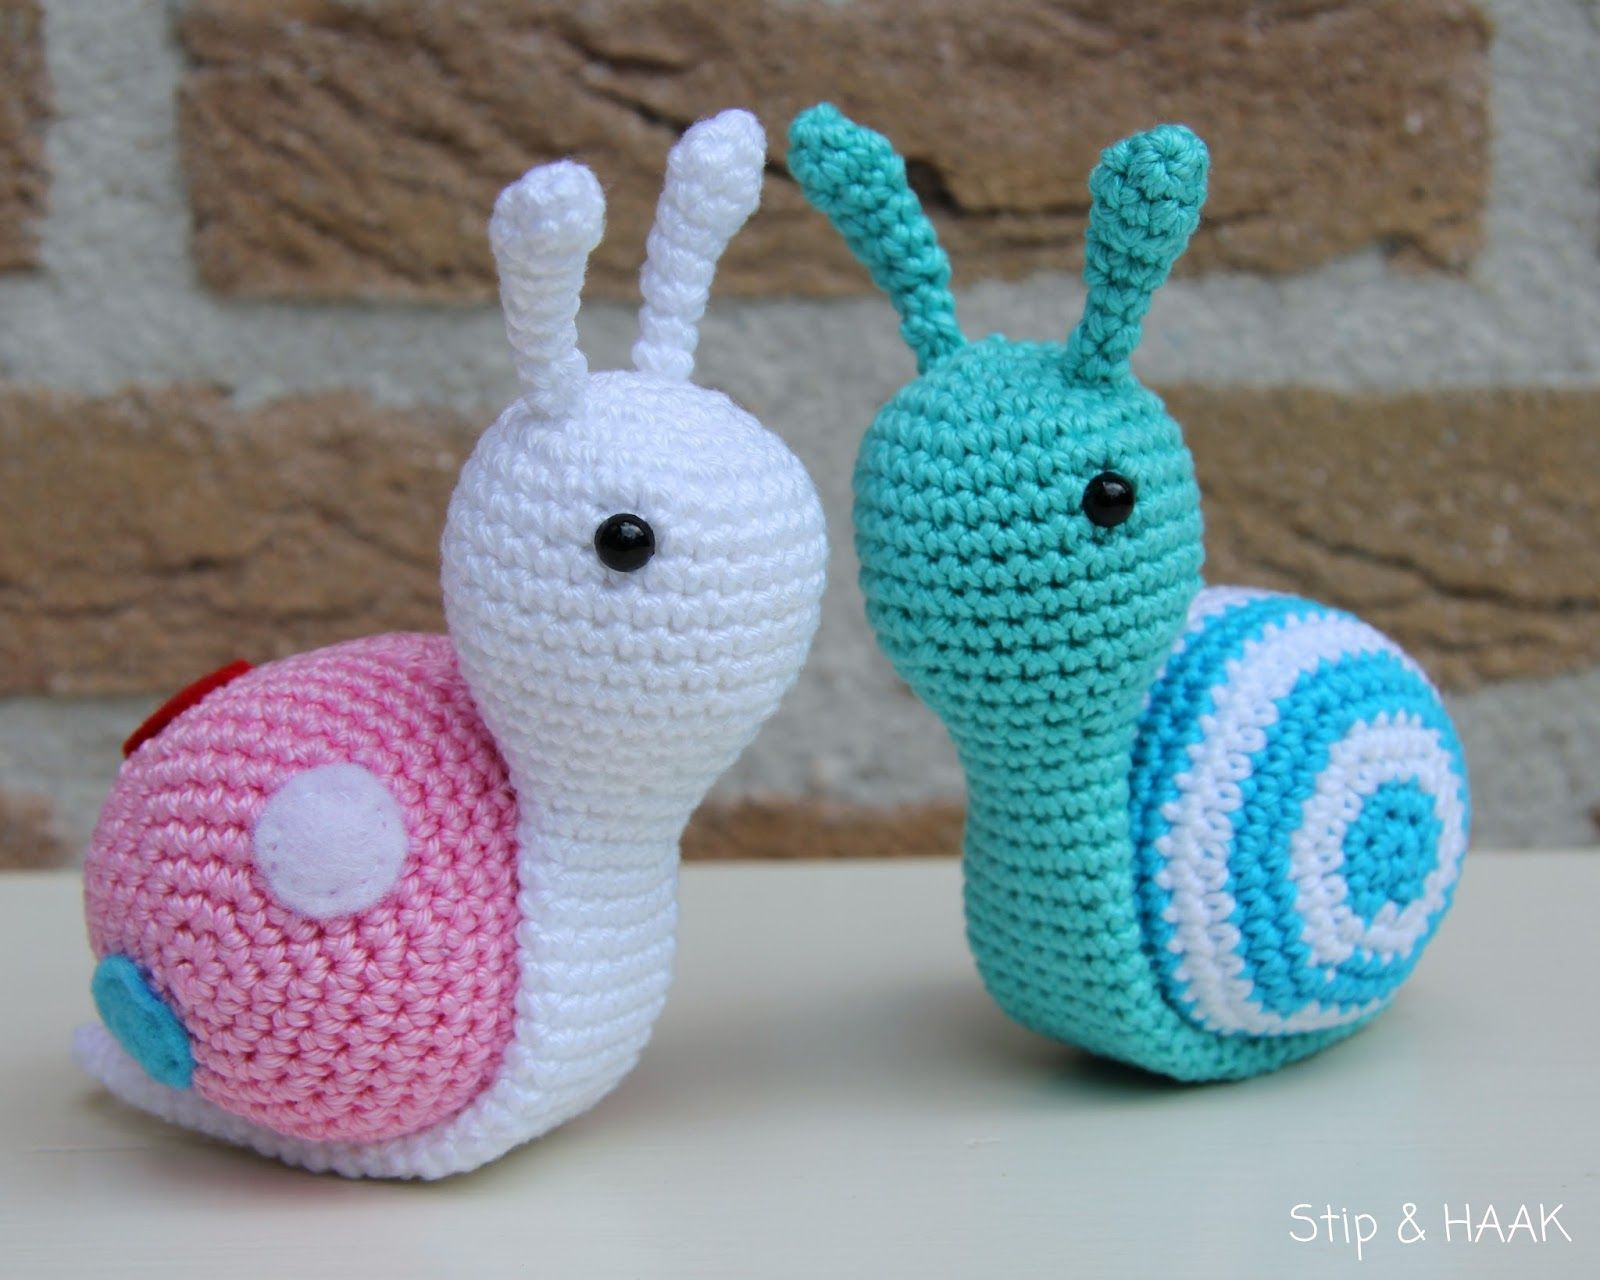 Cute free crochet patterns pinterest top pins snail amigurumi cute free crochet patterns pinterest top pins bankloansurffo Image collections